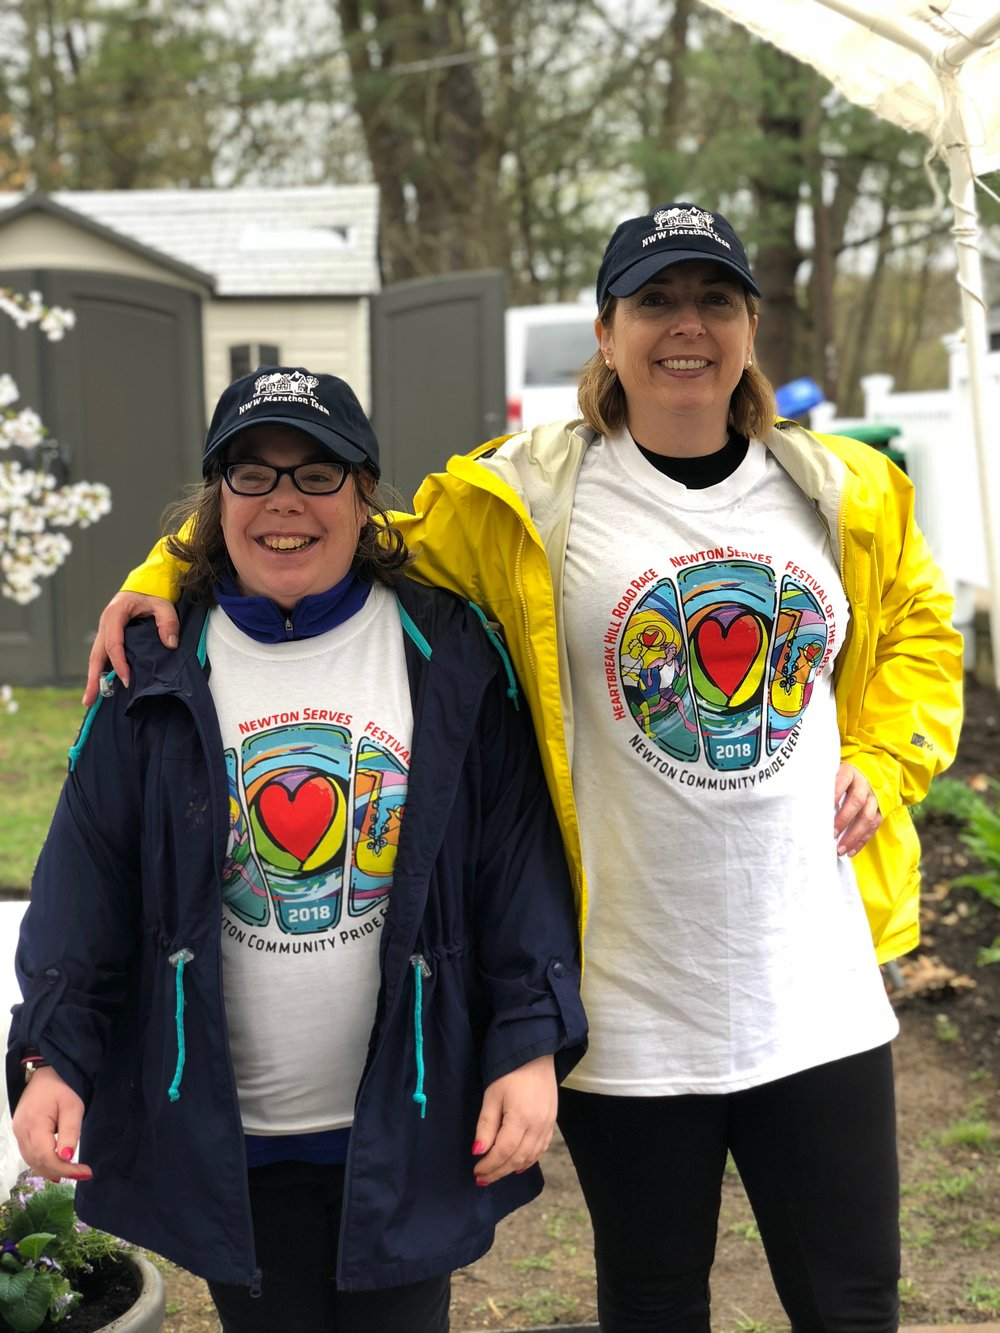 Partner with us in the year ahead! - Learn about Hilary and Katie's story, review what we accomplished together in 2018, and look ahead to the new year.Read it all here!